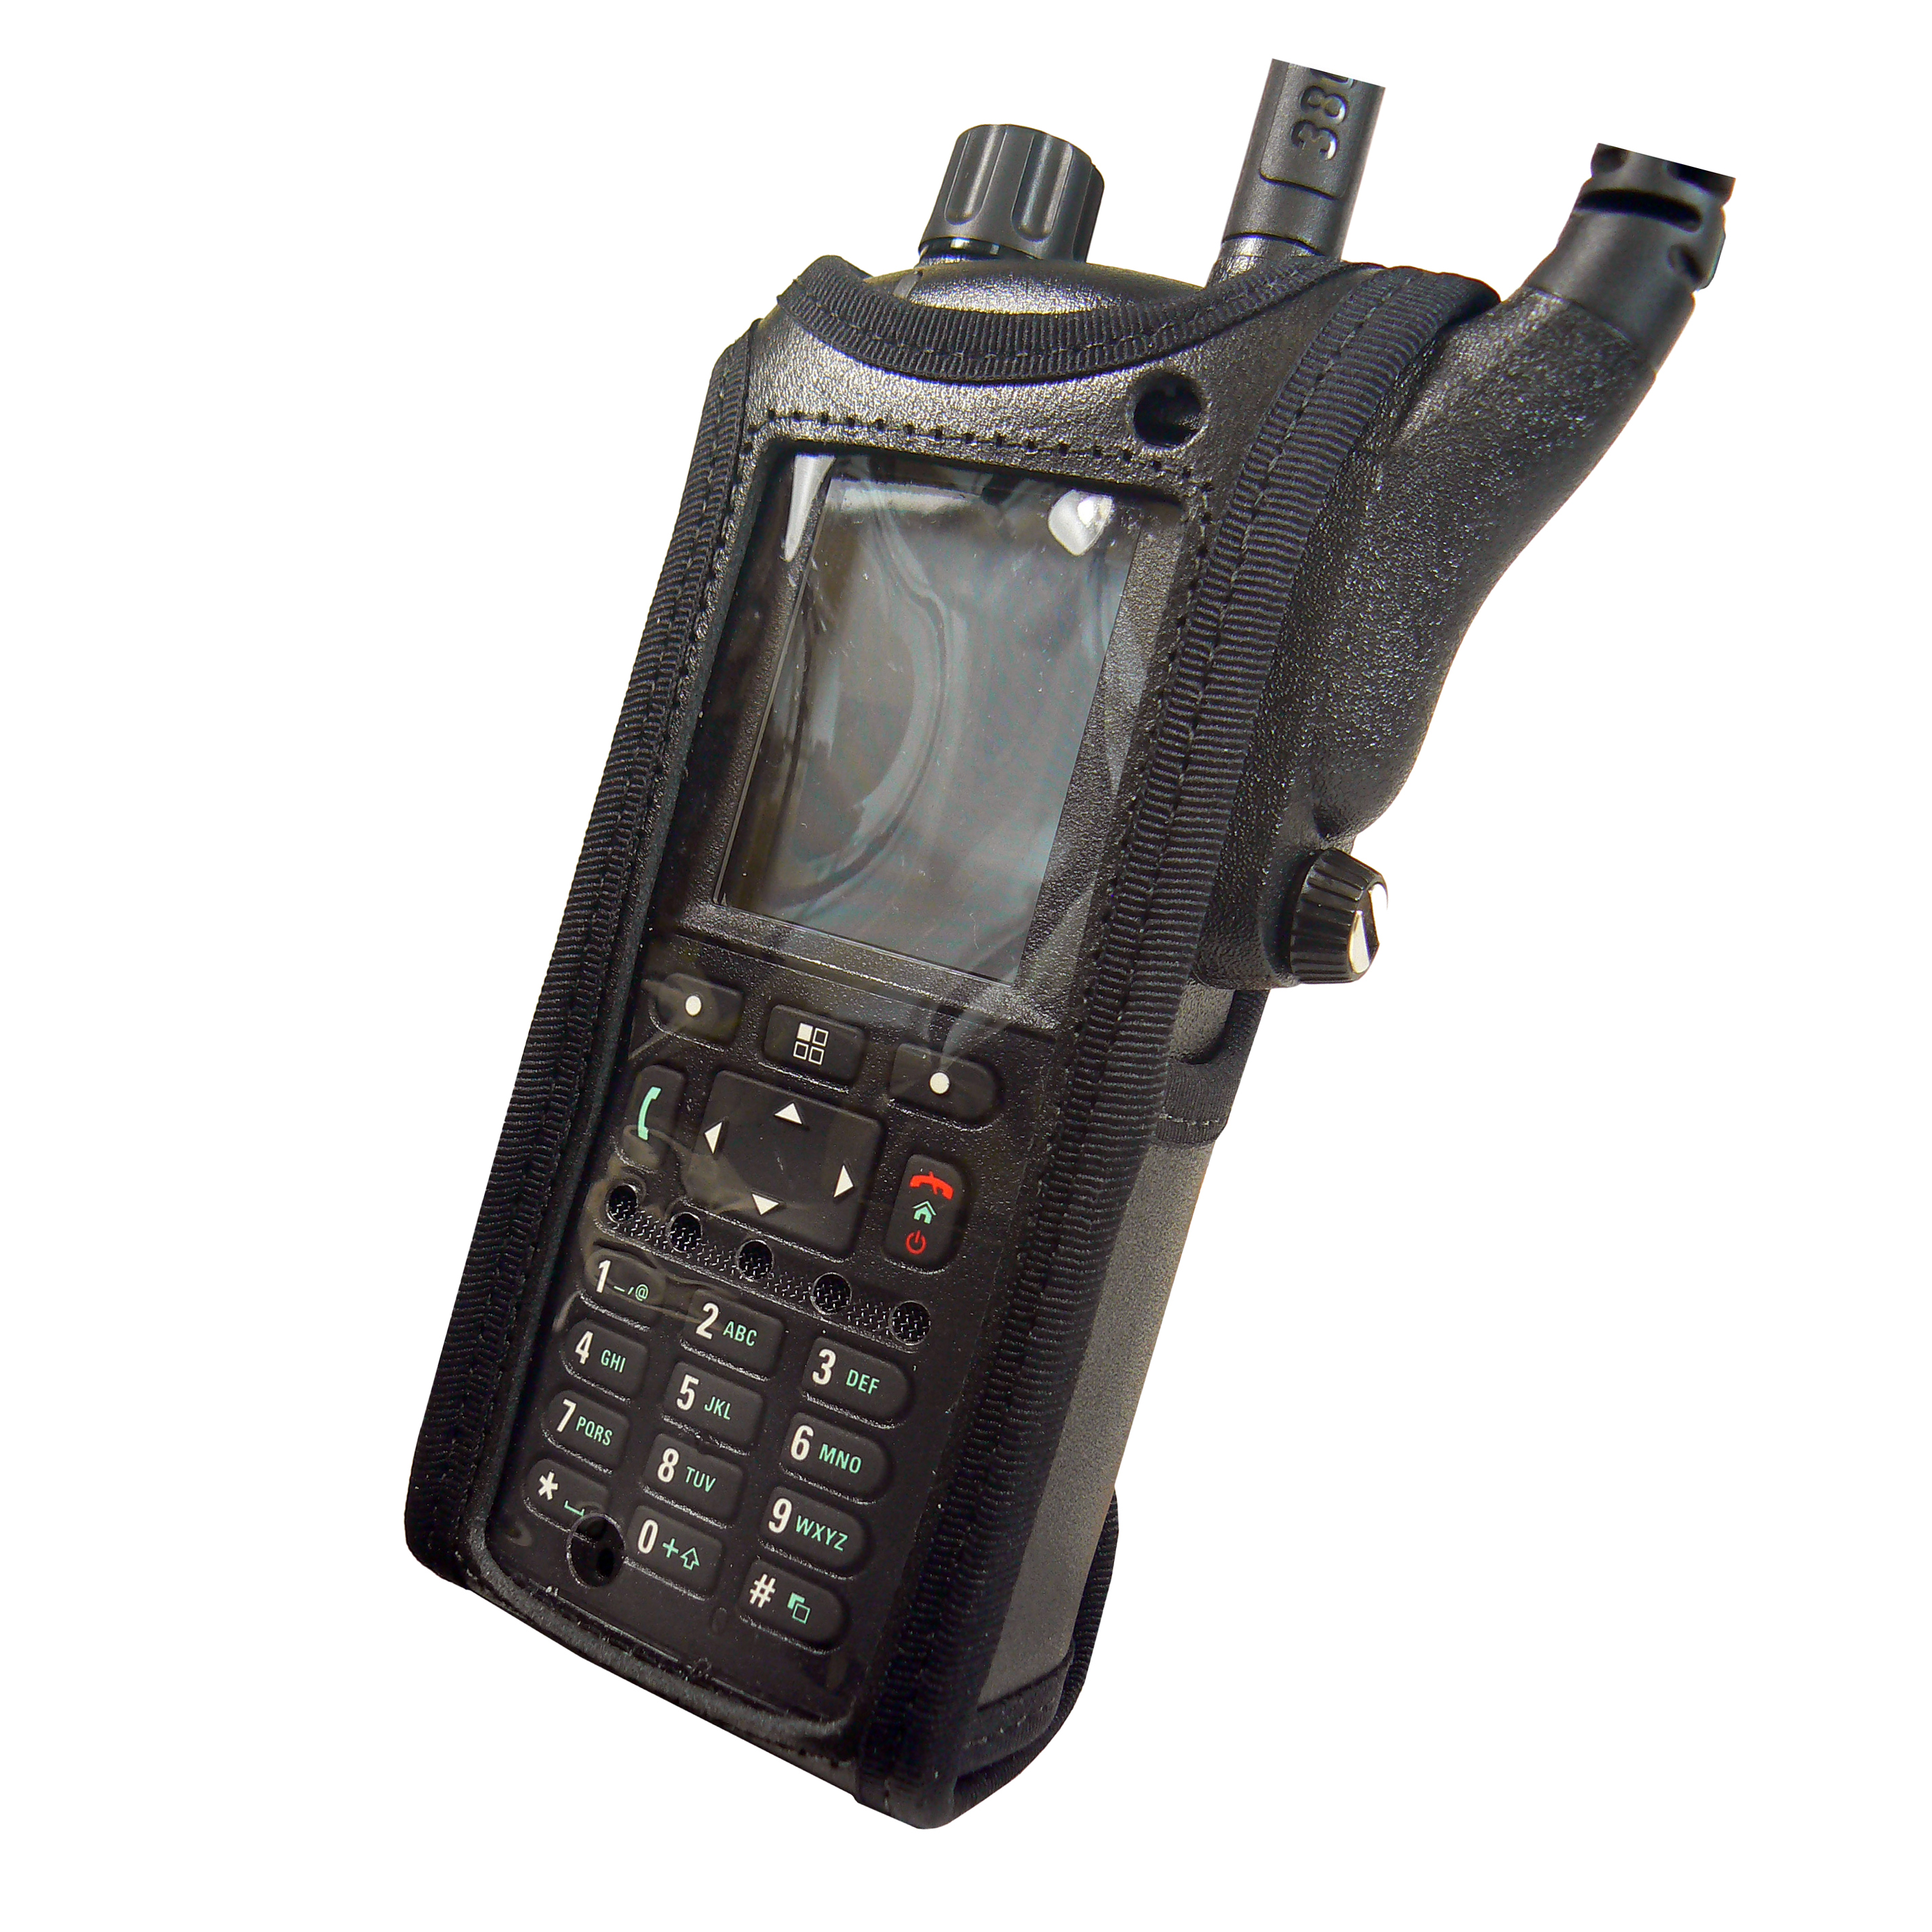 Motorola MTP6550 Tetra leather radio case with Click-On